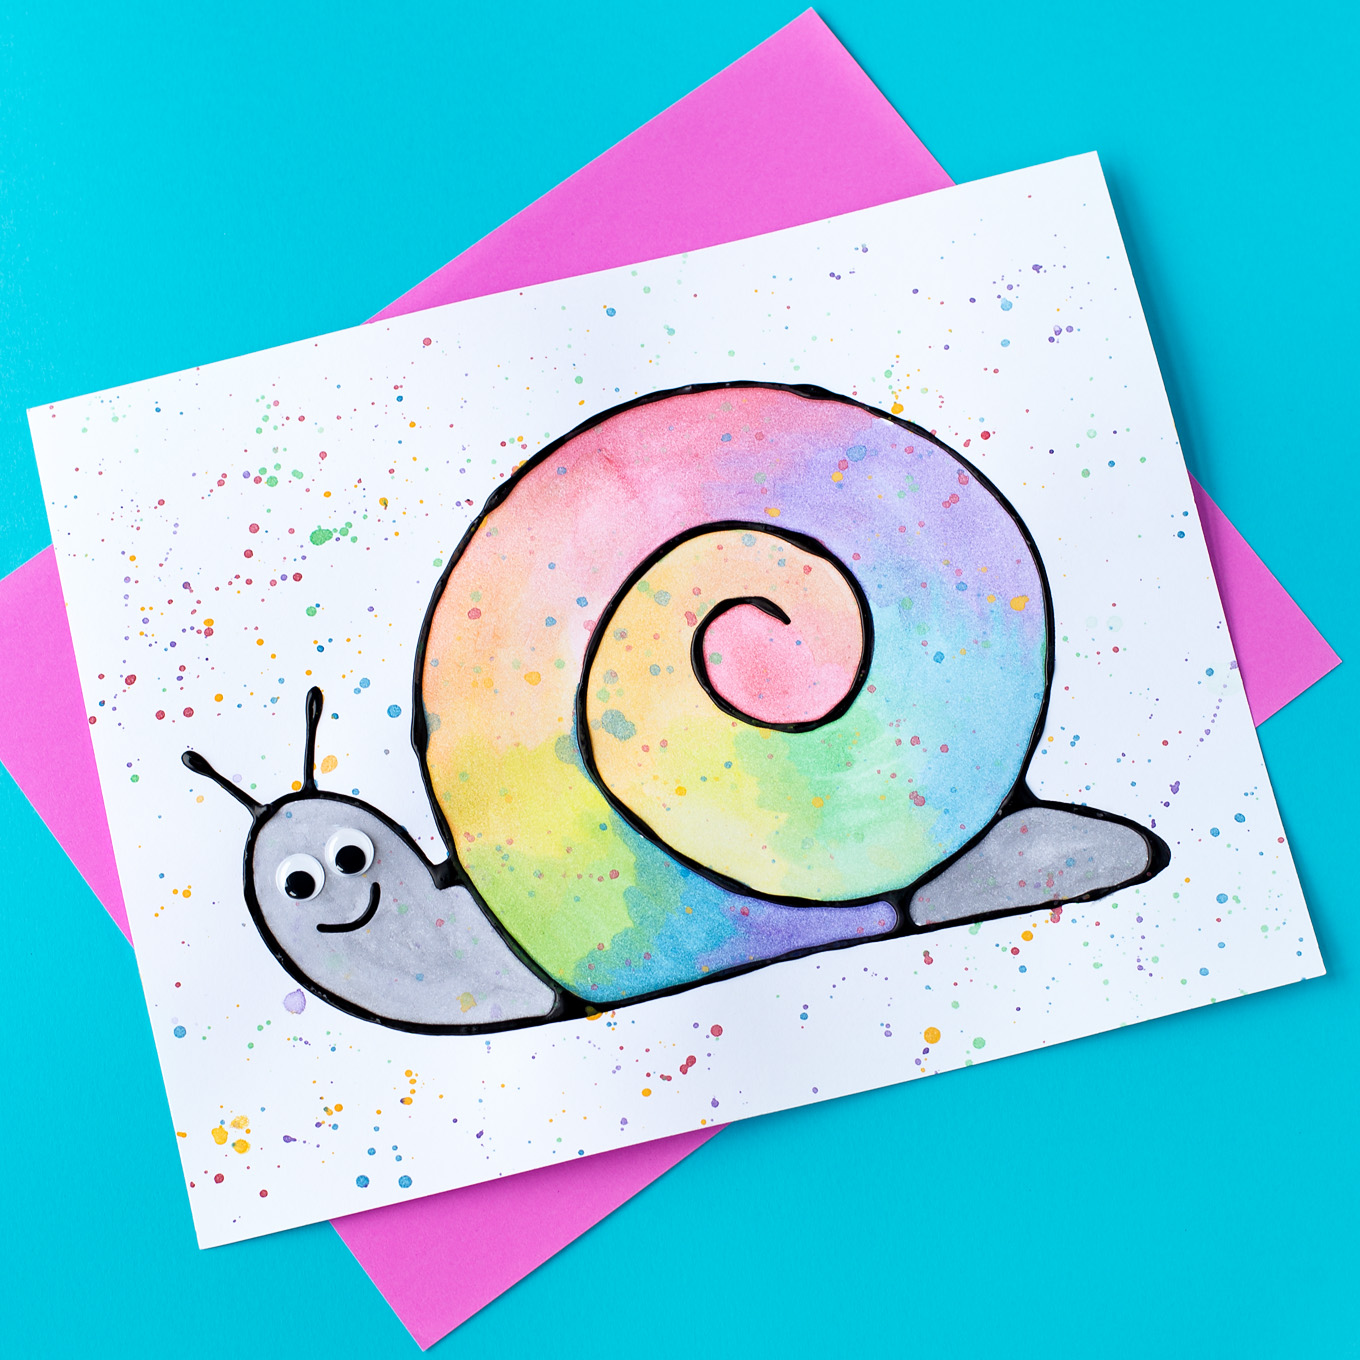 1360x1360 Black Glue And Watercolor Snail Art